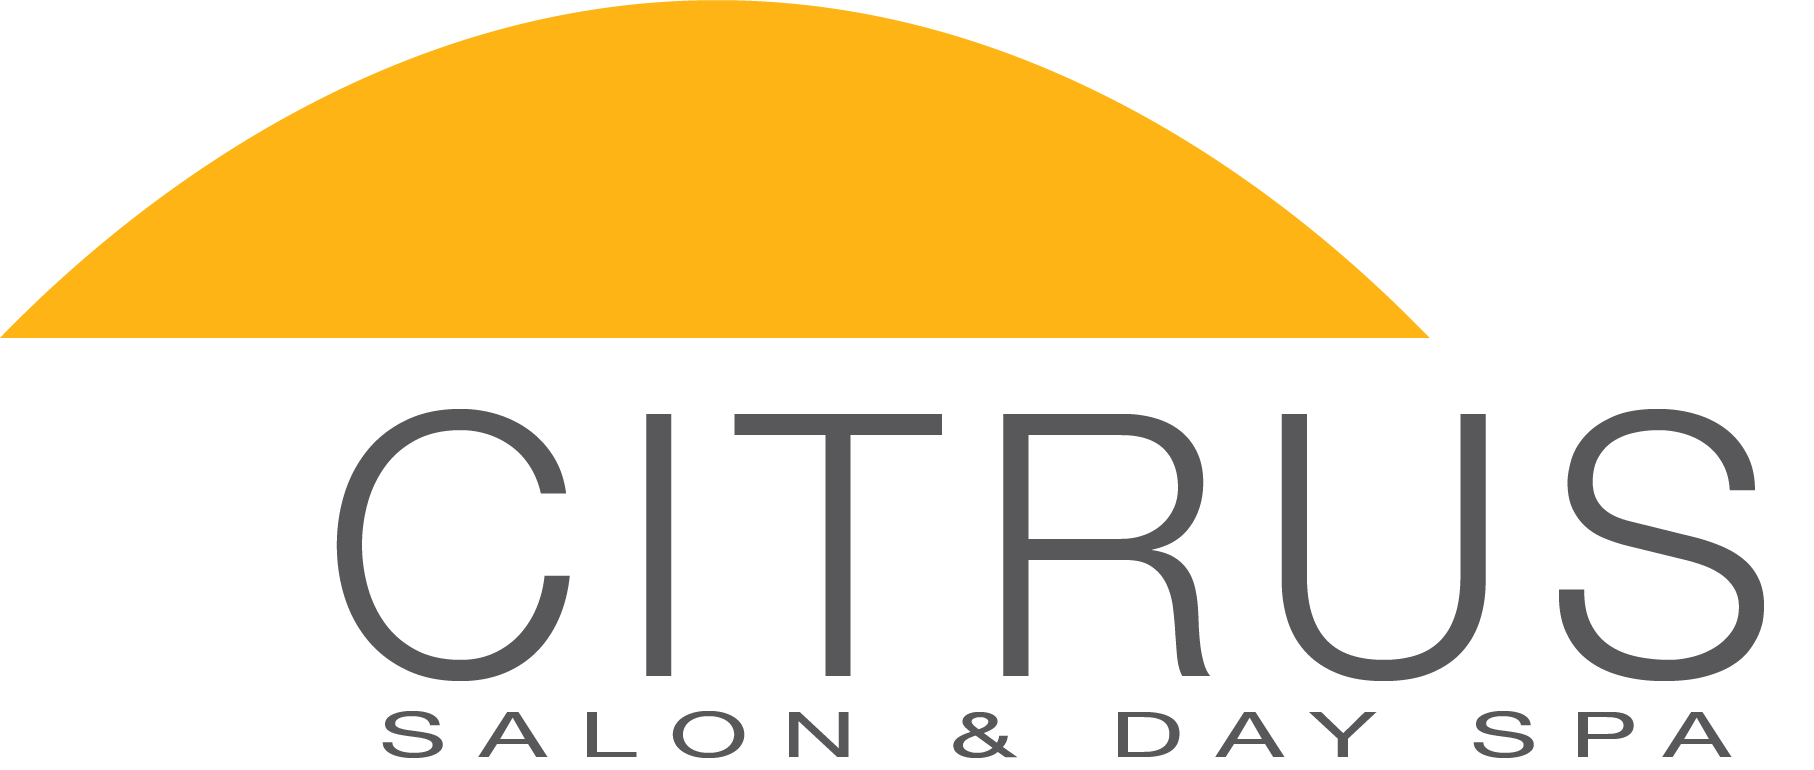 Citrus Salon & Day Spa